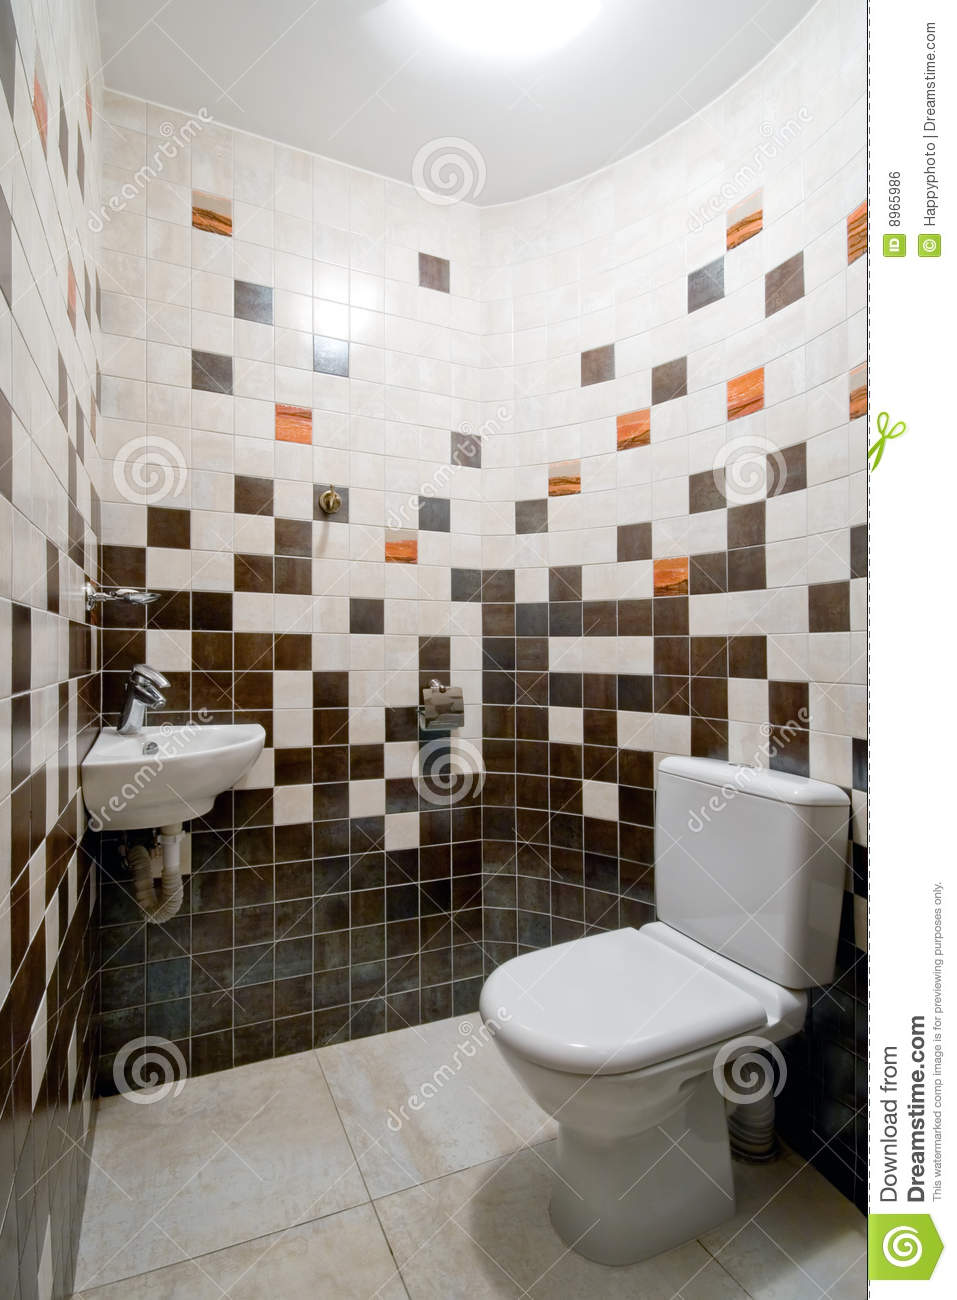 Simple toilet room royalty free stock image image 8965986 for Small wc room design